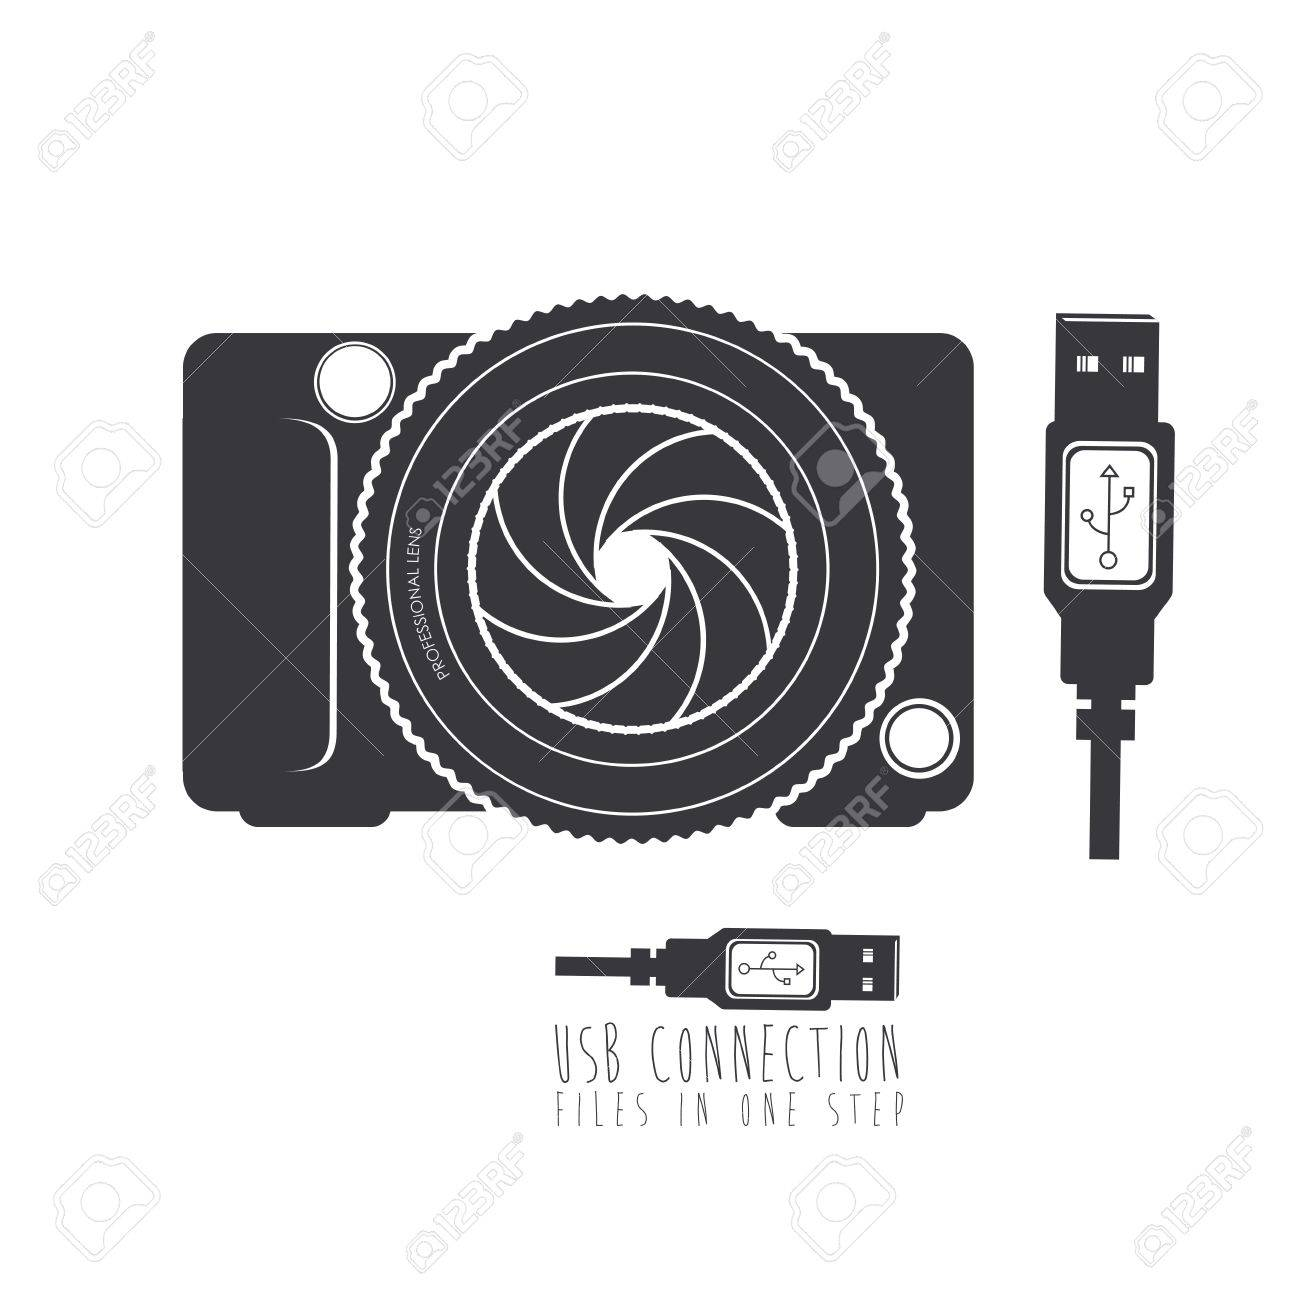 usb connection over white background vector illustration - 21295465